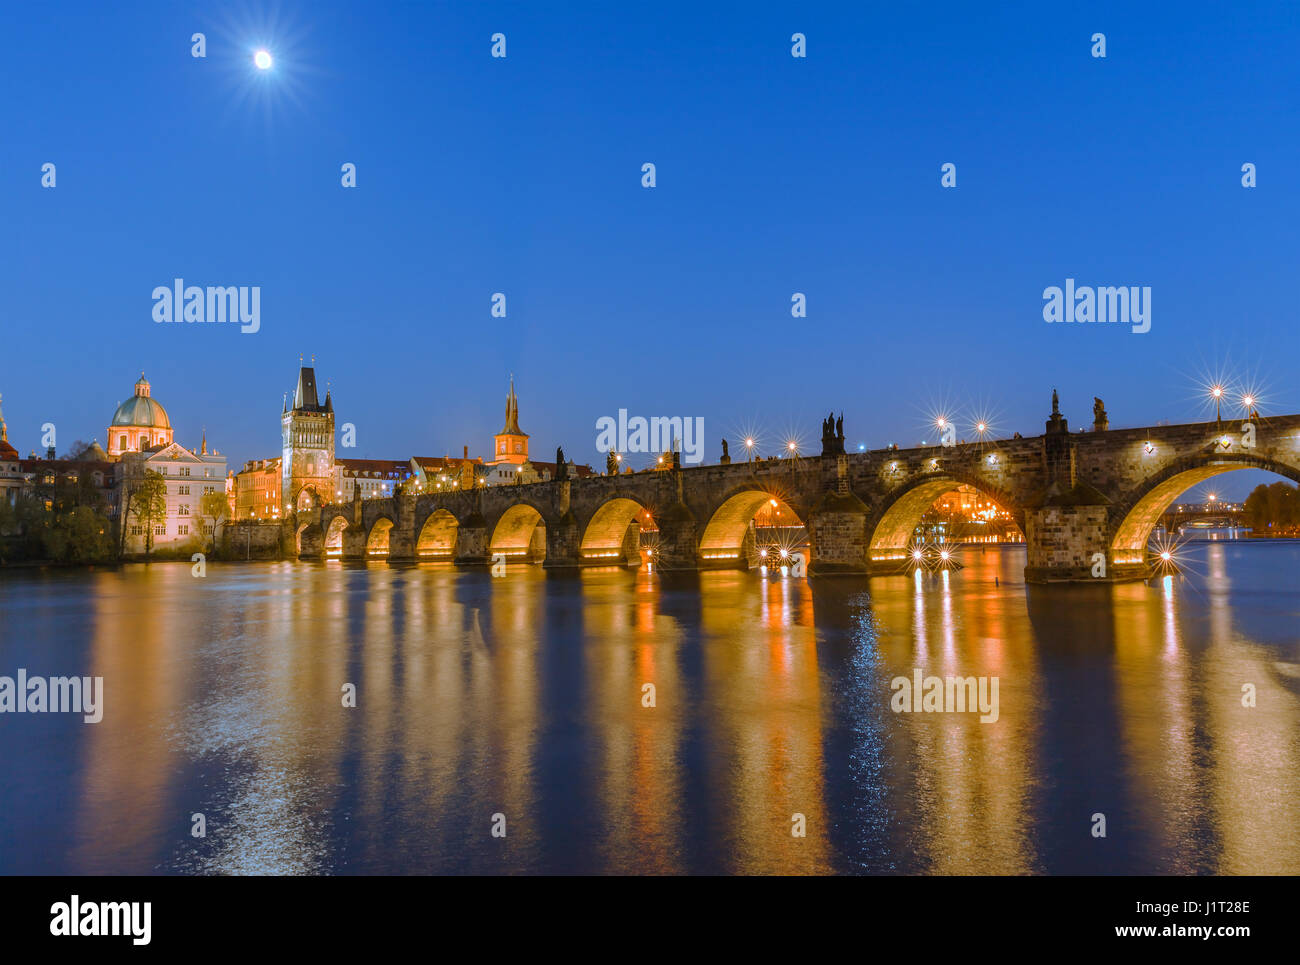 The famous Charles Bridge at sunset in Prague in the Czech Republic - Stock Image